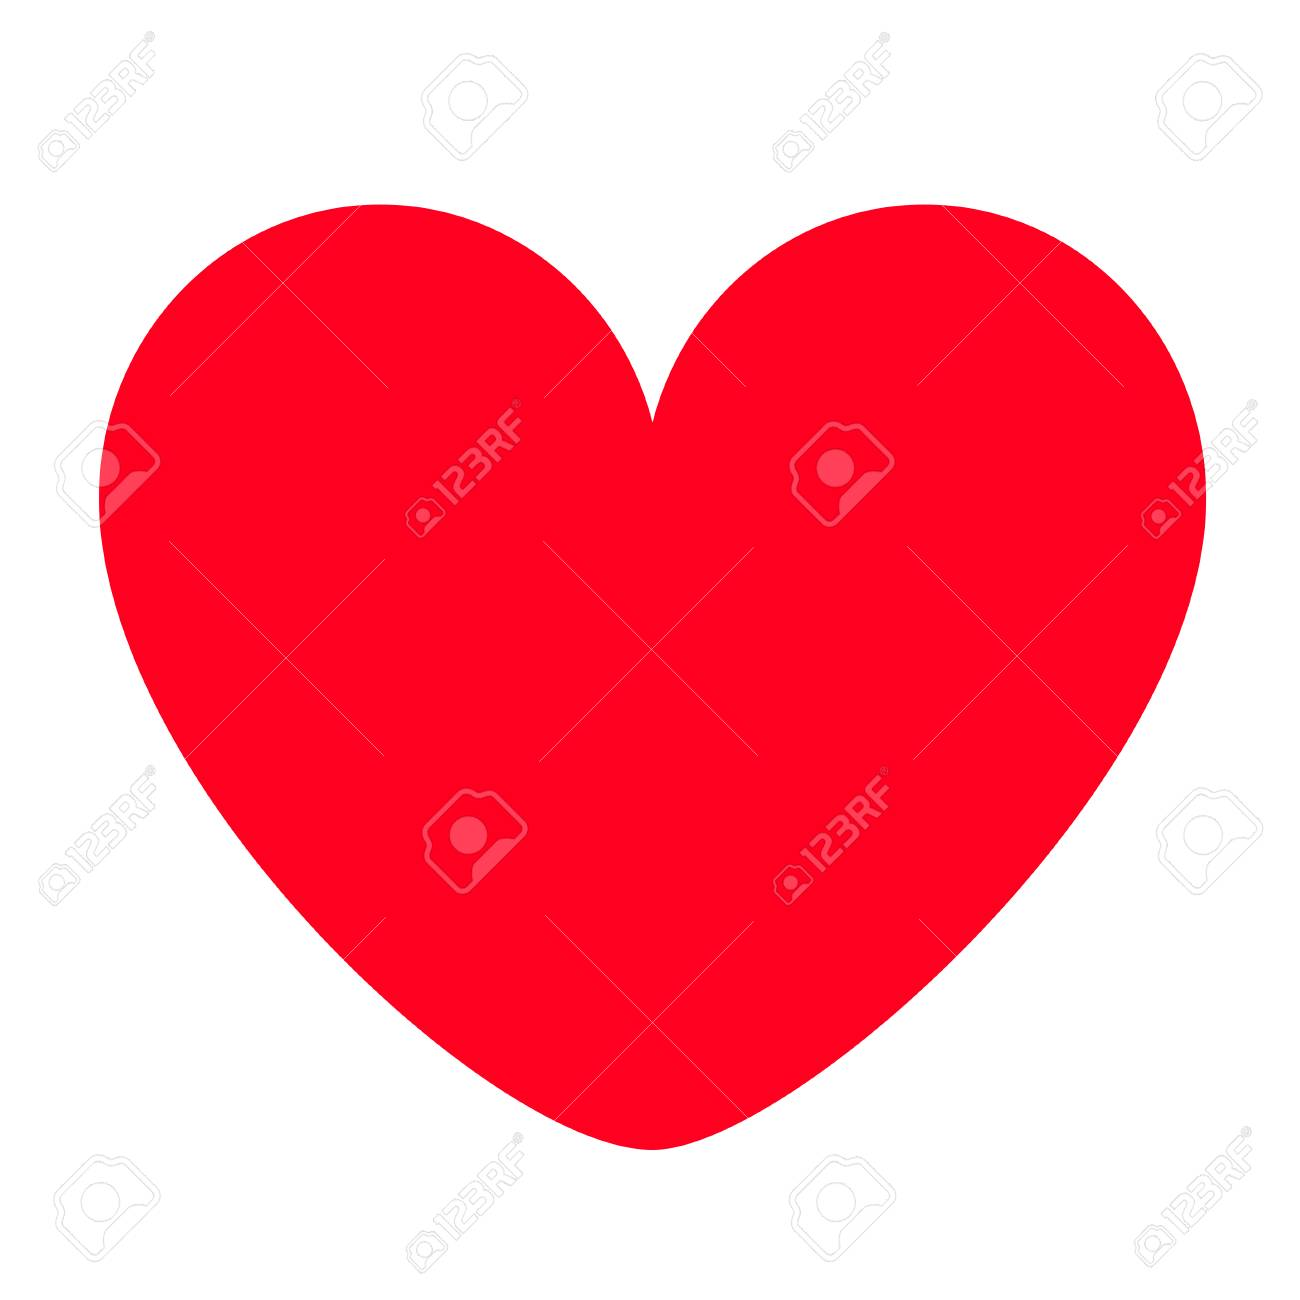 Red heart icon. Happy Valentines day sign symbol simple template. Cute graphic object. Flat design style. Love greeting card. Isolated. White background. Vector illustration - 126304129